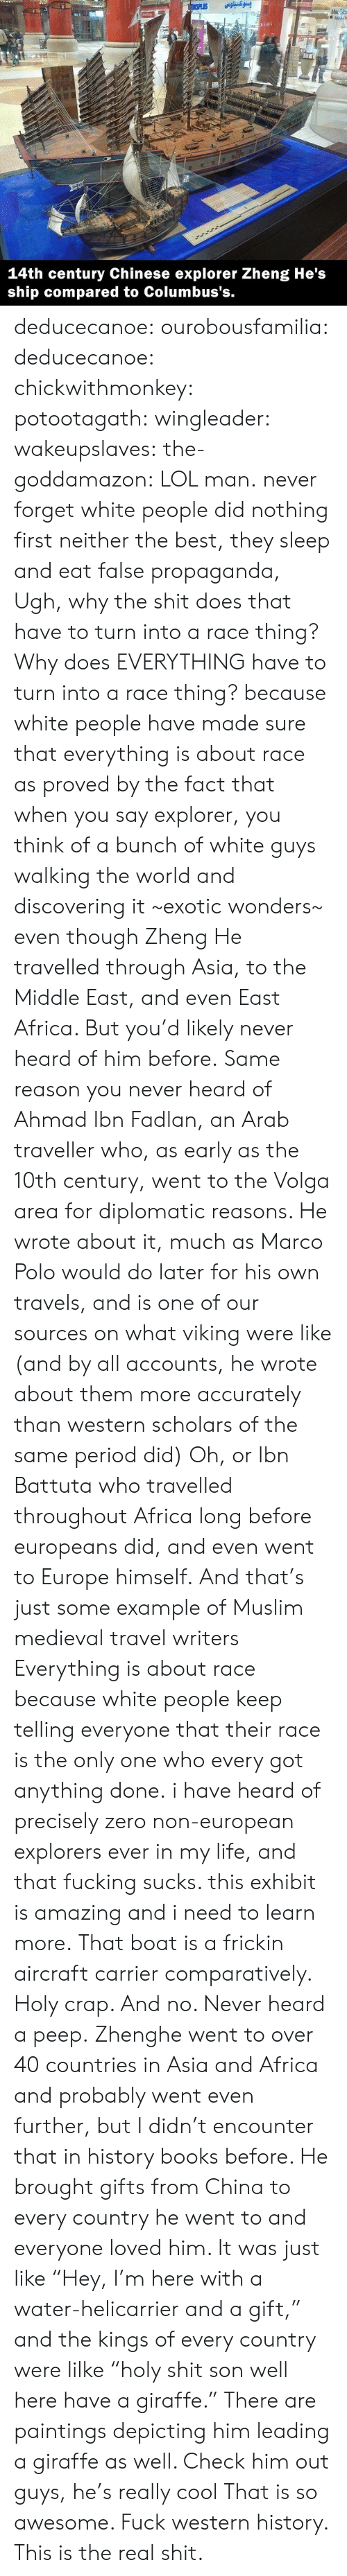 "Western: بوكسيلوس  SPLUS  Ma  A  83INT  14th century Chinese explorer Zheng He's  ship compared to Columbus's. deducecanoe: ourobousfamilia:  deducecanoe:  chickwithmonkey:  potootagath:  wingleader:  wakeupslaves:  the-goddamazon:  LOL man.  never forget white people did nothing first neither the best, they sleep and eat false propaganda,  Ugh, why the shit does that have to turn into a race thing? Why does EVERYTHING have to turn into a race thing?  because white people have made sure that everything is about race as proved by the fact that when you say explorer, you think of a bunch of white guys walking the world and discovering it ~exotic wonders~ even though Zheng He travelled through Asia, to the Middle East, and even East Africa. But you'd likely never heard of him before. Same reason you never heard of Ahmad Ibn Fadlan, an Arab traveller who, as early as the 10th century, went to the Volga area for diplomatic reasons. He wrote about it, much as Marco Polo would do later for his own travels, and is one of our sources on what viking were like (and by all accounts, he wrote about them more accurately than western scholars of the same period did) Oh, or Ibn Battuta who travelled throughout Africa long before europeans did, and even went to Europe himself. And that's just some example of Muslim medieval travel writers Everything is about race because white people keep telling everyone that their race is the only one who every got anything done.  i have heard of precisely zero non-european explorers ever in my life, and that fucking sucks. this exhibit is amazing and i need to learn more.  That boat is a frickin aircraft carrier comparatively. Holy crap. And no. Never heard a peep.  Zhenghe went to over 40 countries in Asia and Africa and probably went even further, but I didn't encounter that in history books before. He brought gifts from China to every country he went to and everyone loved him. It was just like ""Hey, I'm here with a water-helicarrier and a gift,"" and the kings of every country were lilke ""holy shit son well here have a giraffe."" There are paintings depicting him leading a giraffe as well. Check him out guys, he's really cool  That is so awesome. Fuck western history. This is the real shit."